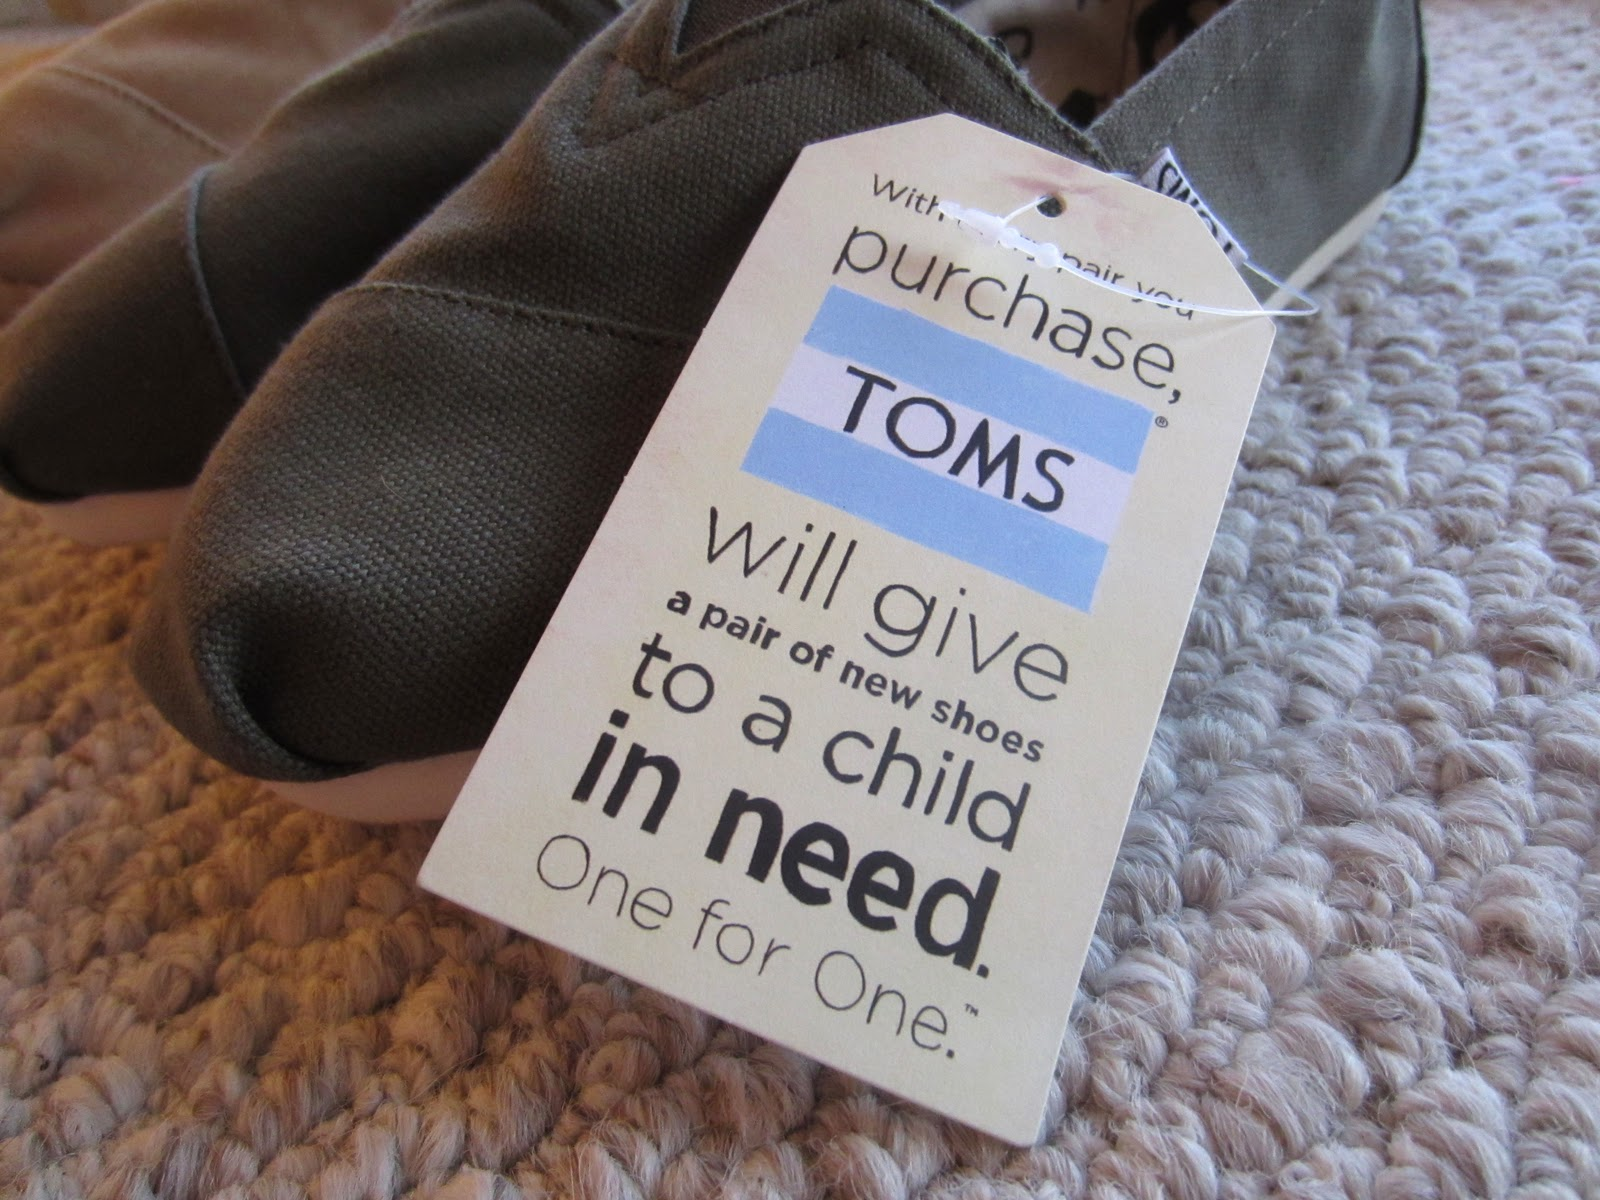 TOMS-will-give-a-pair-of-shoes-to-a-child-in-need.jpg